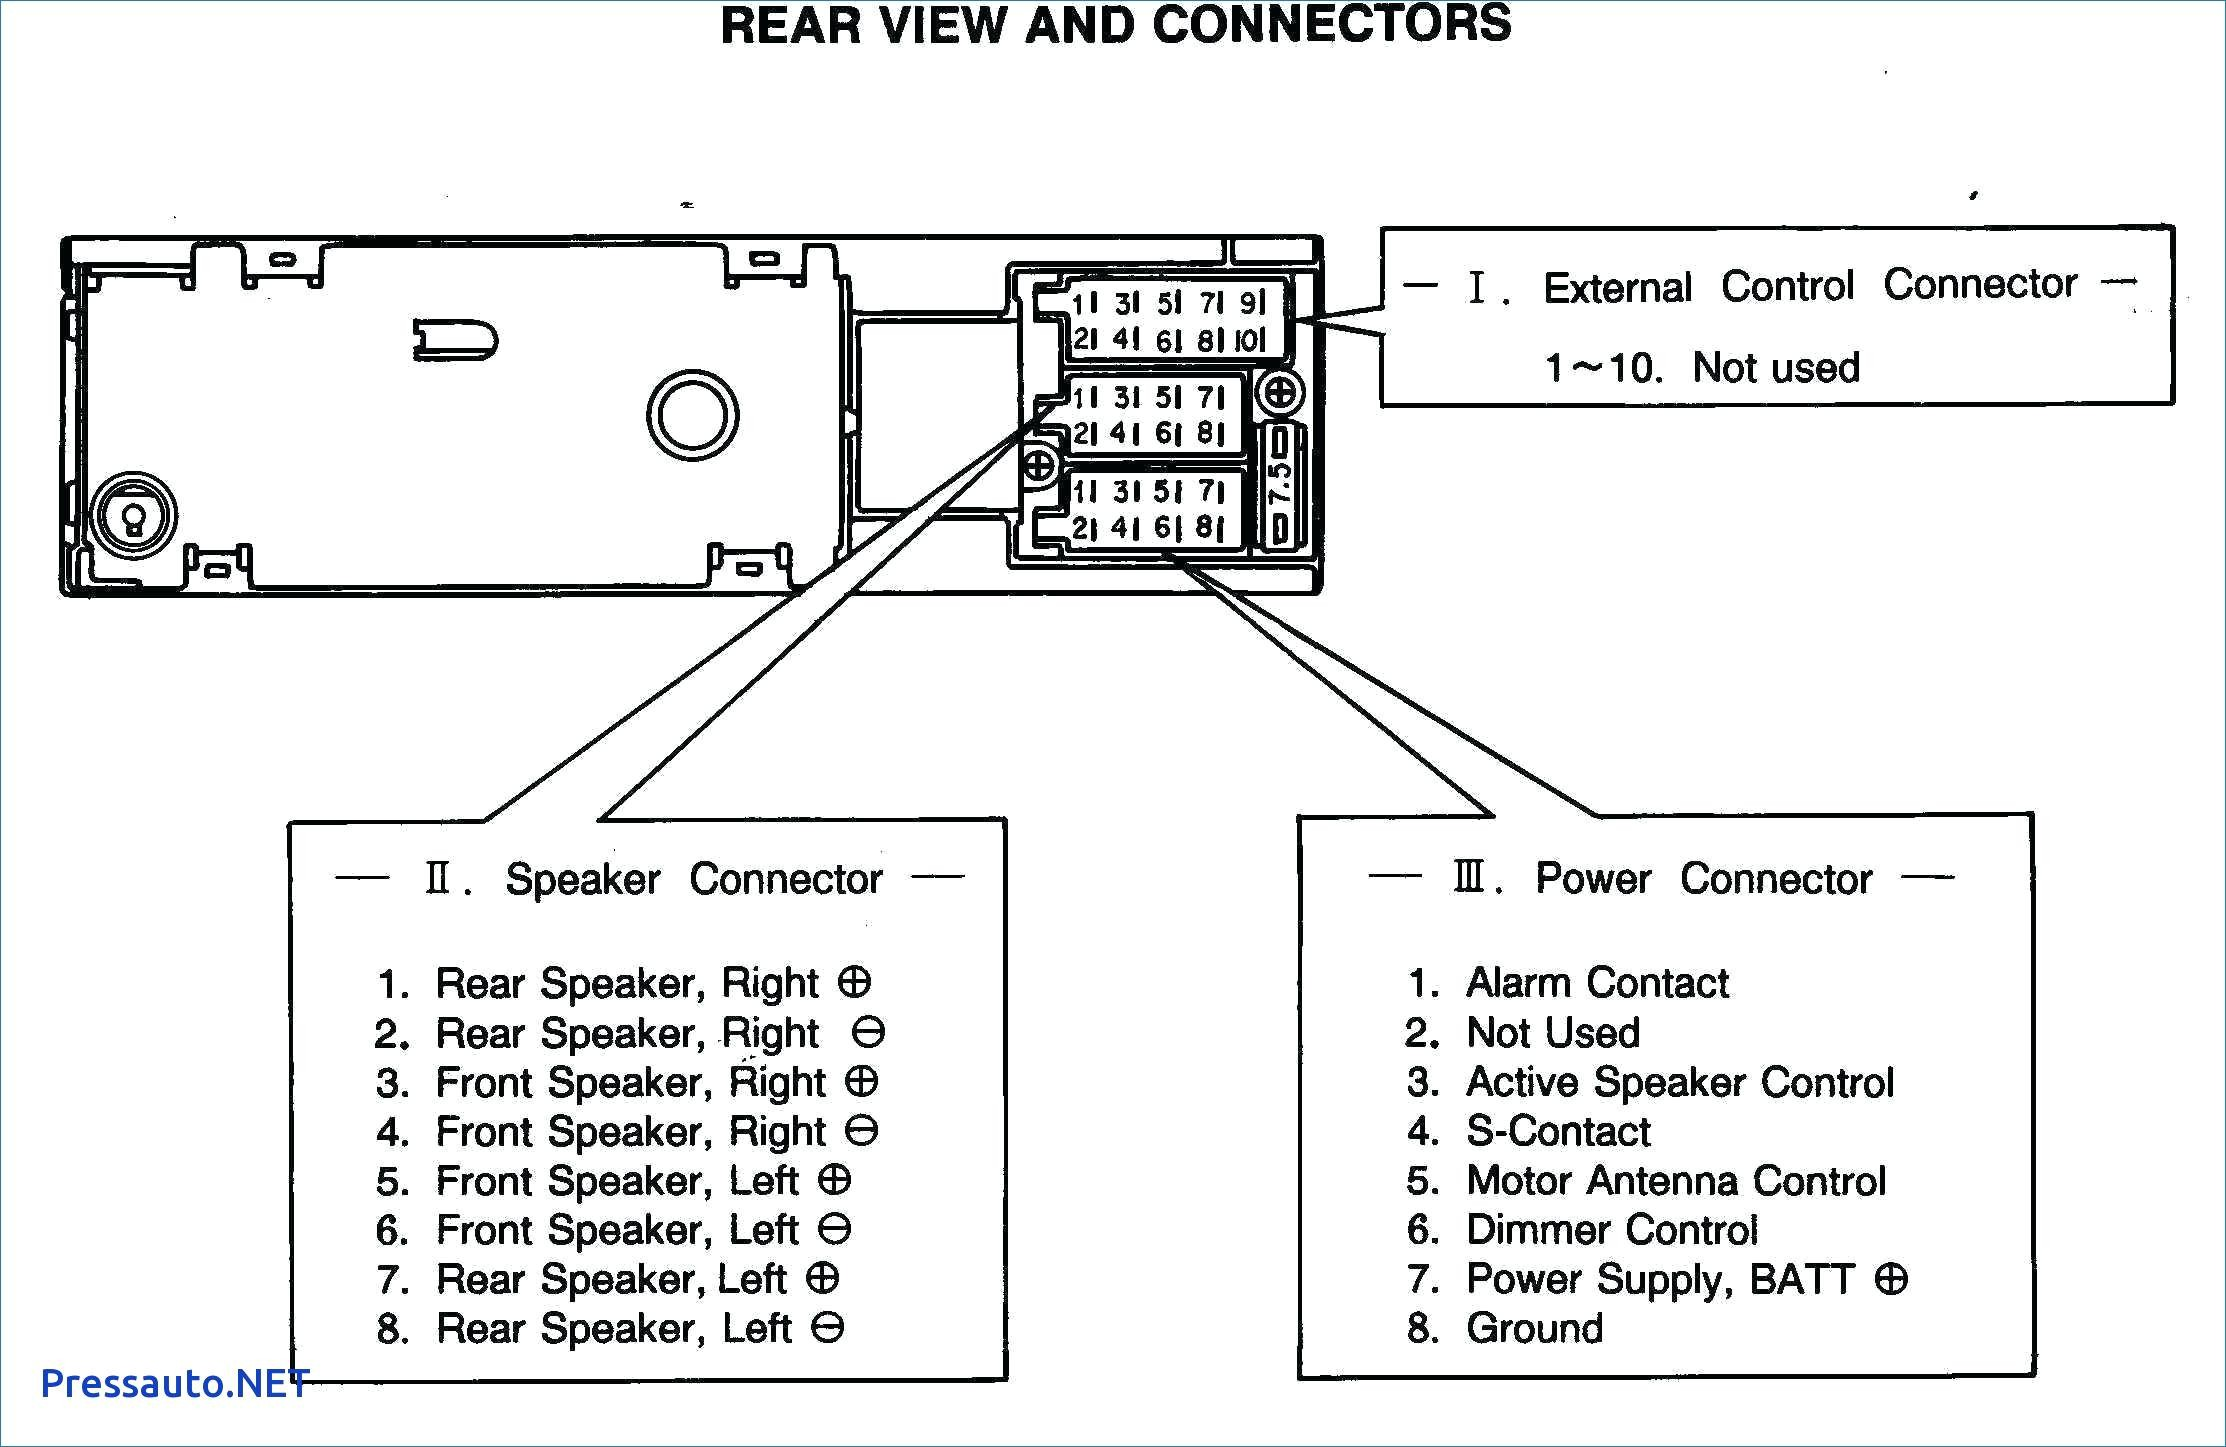 2004 Jeep Grand Cherokee Engine Diagram Jeep Grand Cherokee Starter Wiring Diagram 2003 Sensor Engine forum Of 2004 Jeep Grand Cherokee Engine Diagram